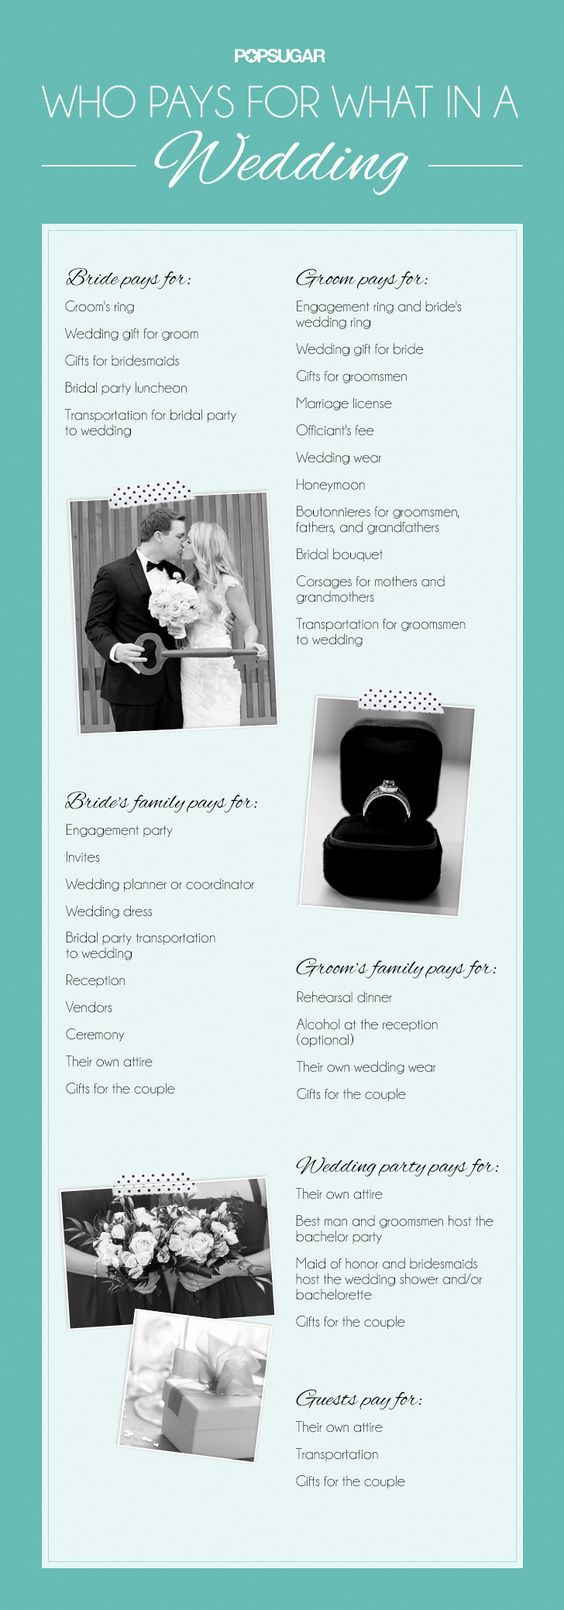 Groom who pays for what in a wedding 2551437 weddbook for Who pays for wedding photographer